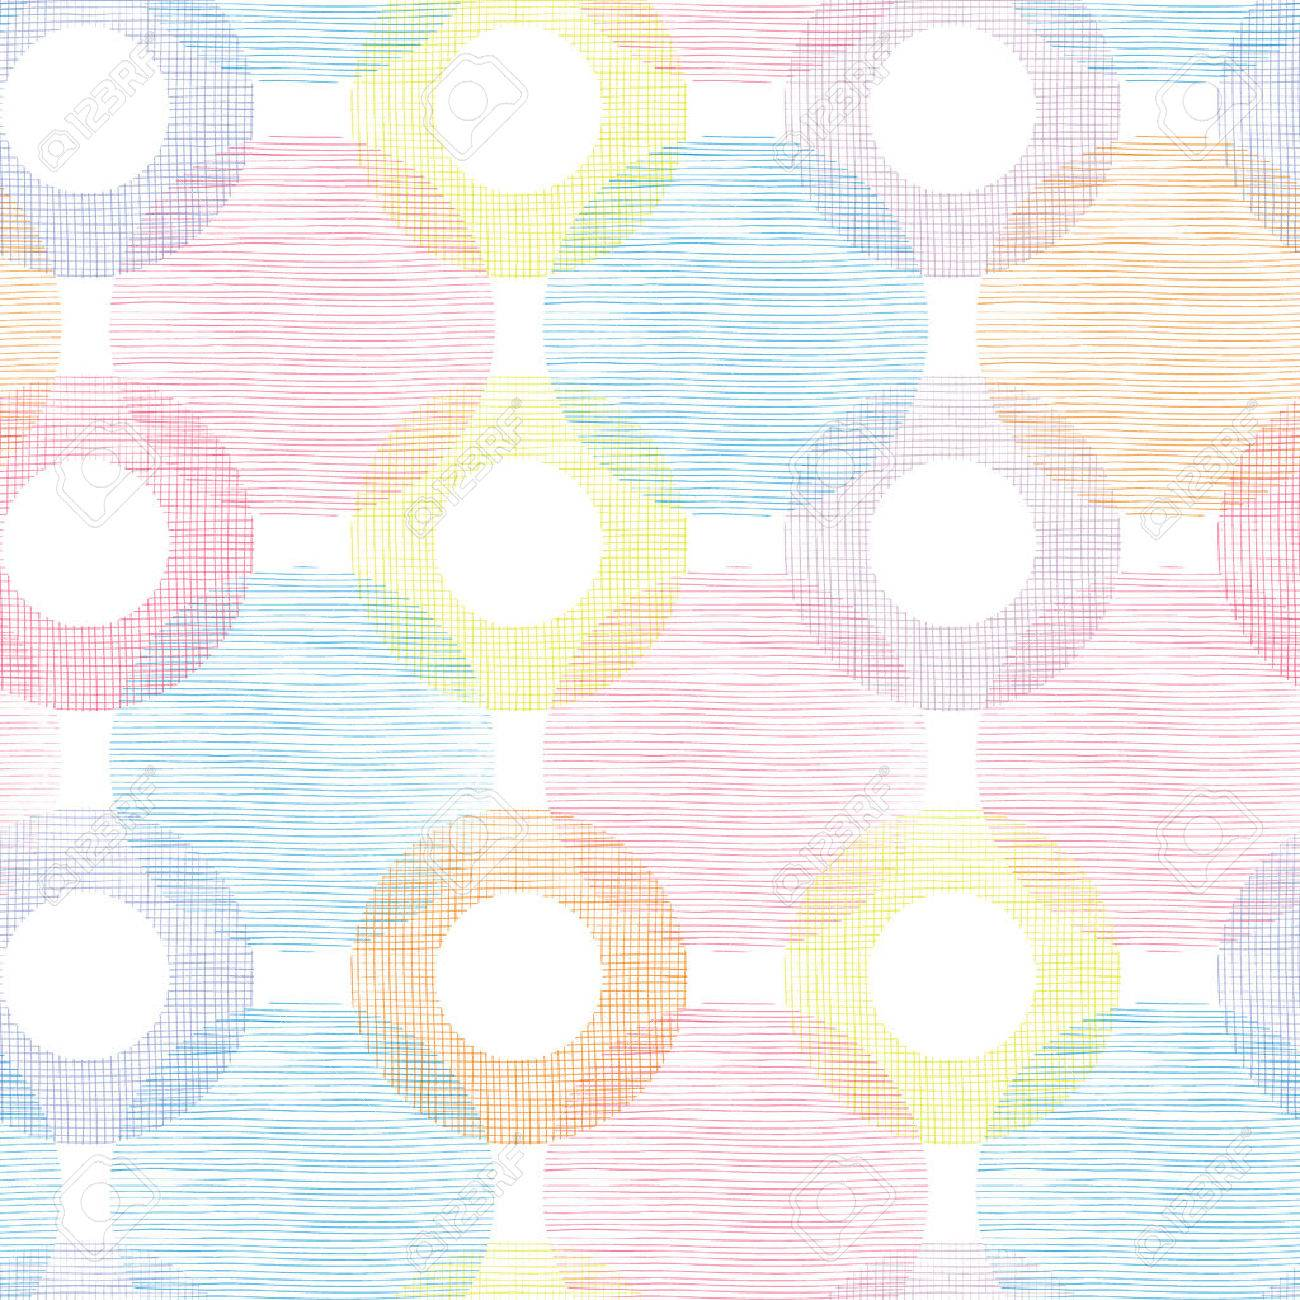 Colorful textile circles seamless patter background border Stock Vector - 37207651